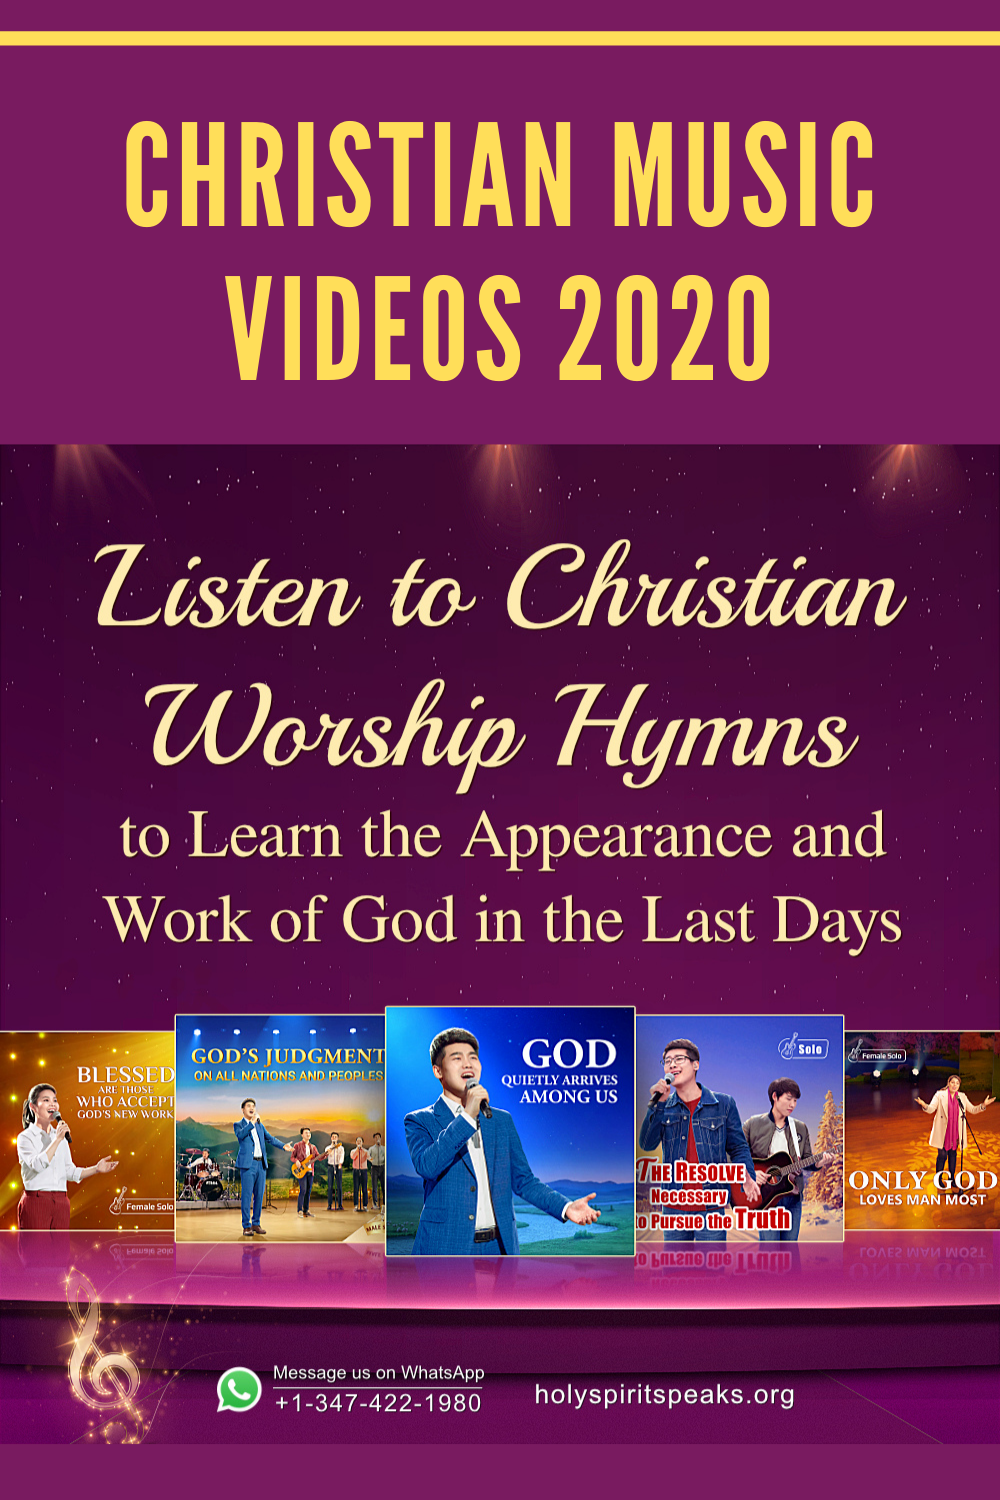 20 Best Christian Worship Songs About Seeking God Gospel Of The Descent Of The Kingdom In 2020 Worship Songs Praise Songs Praise And Worship Songs